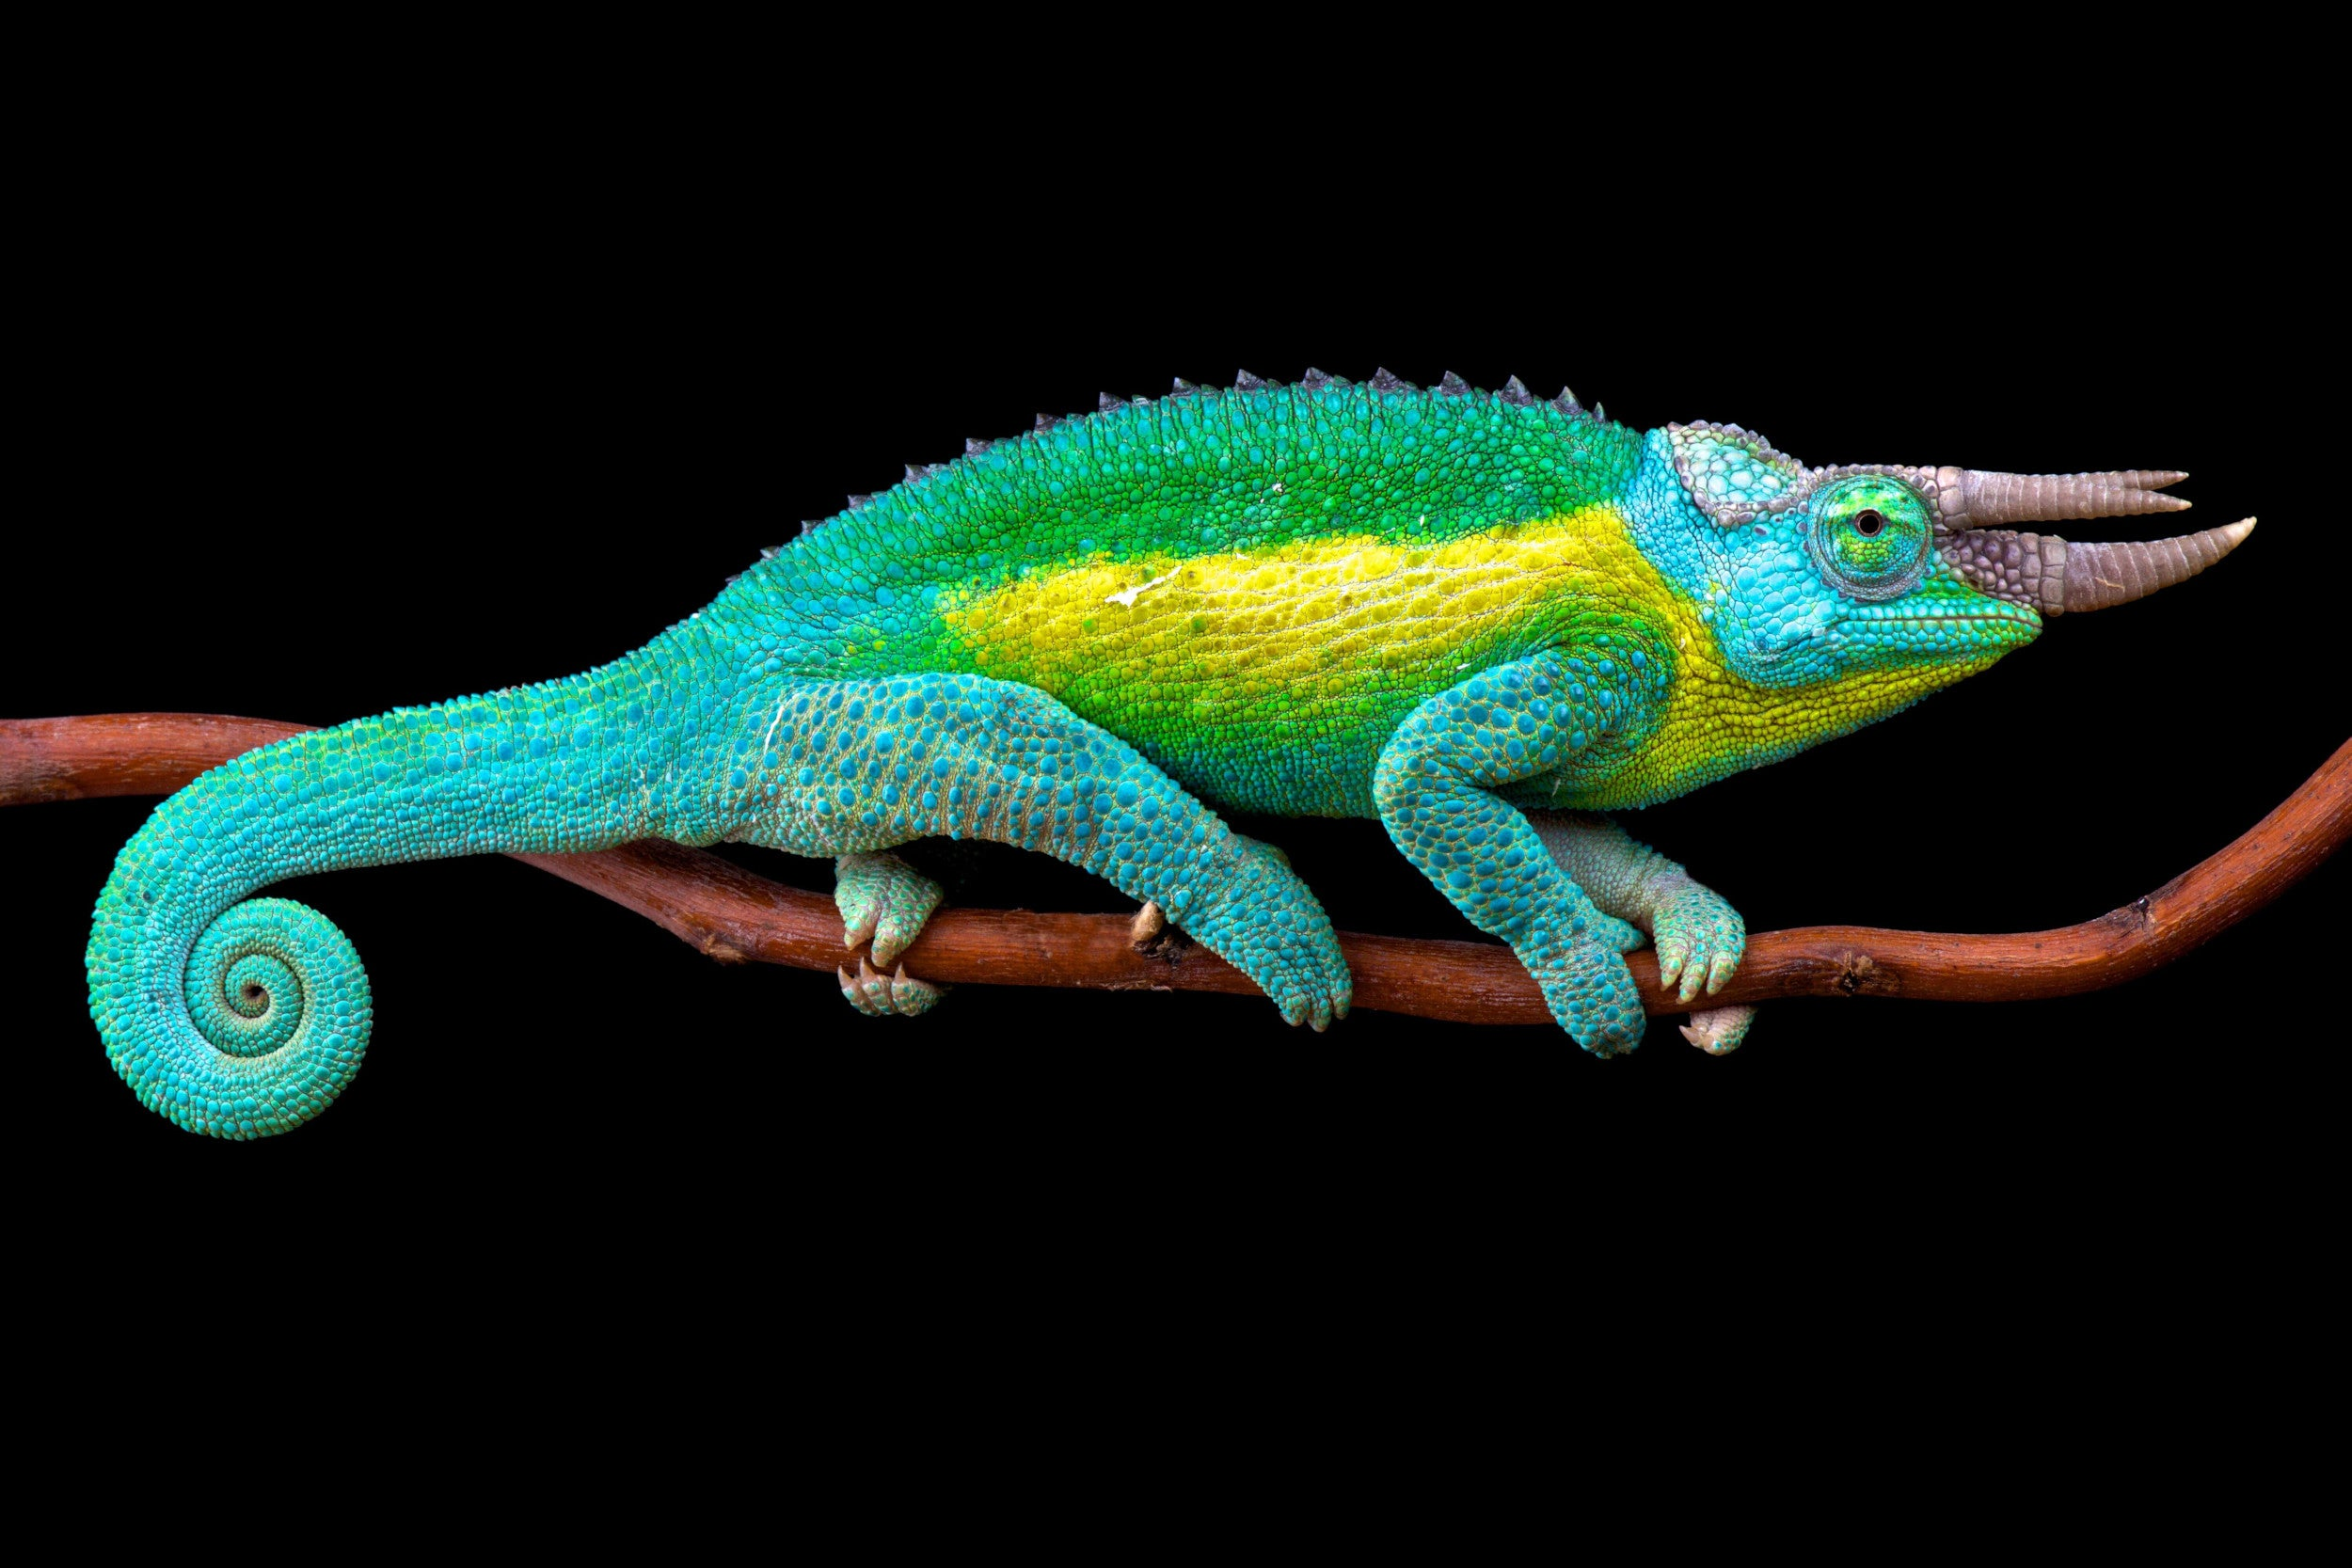 A Jackson's Chameleon: the horns are used to duell against rival chameleons.